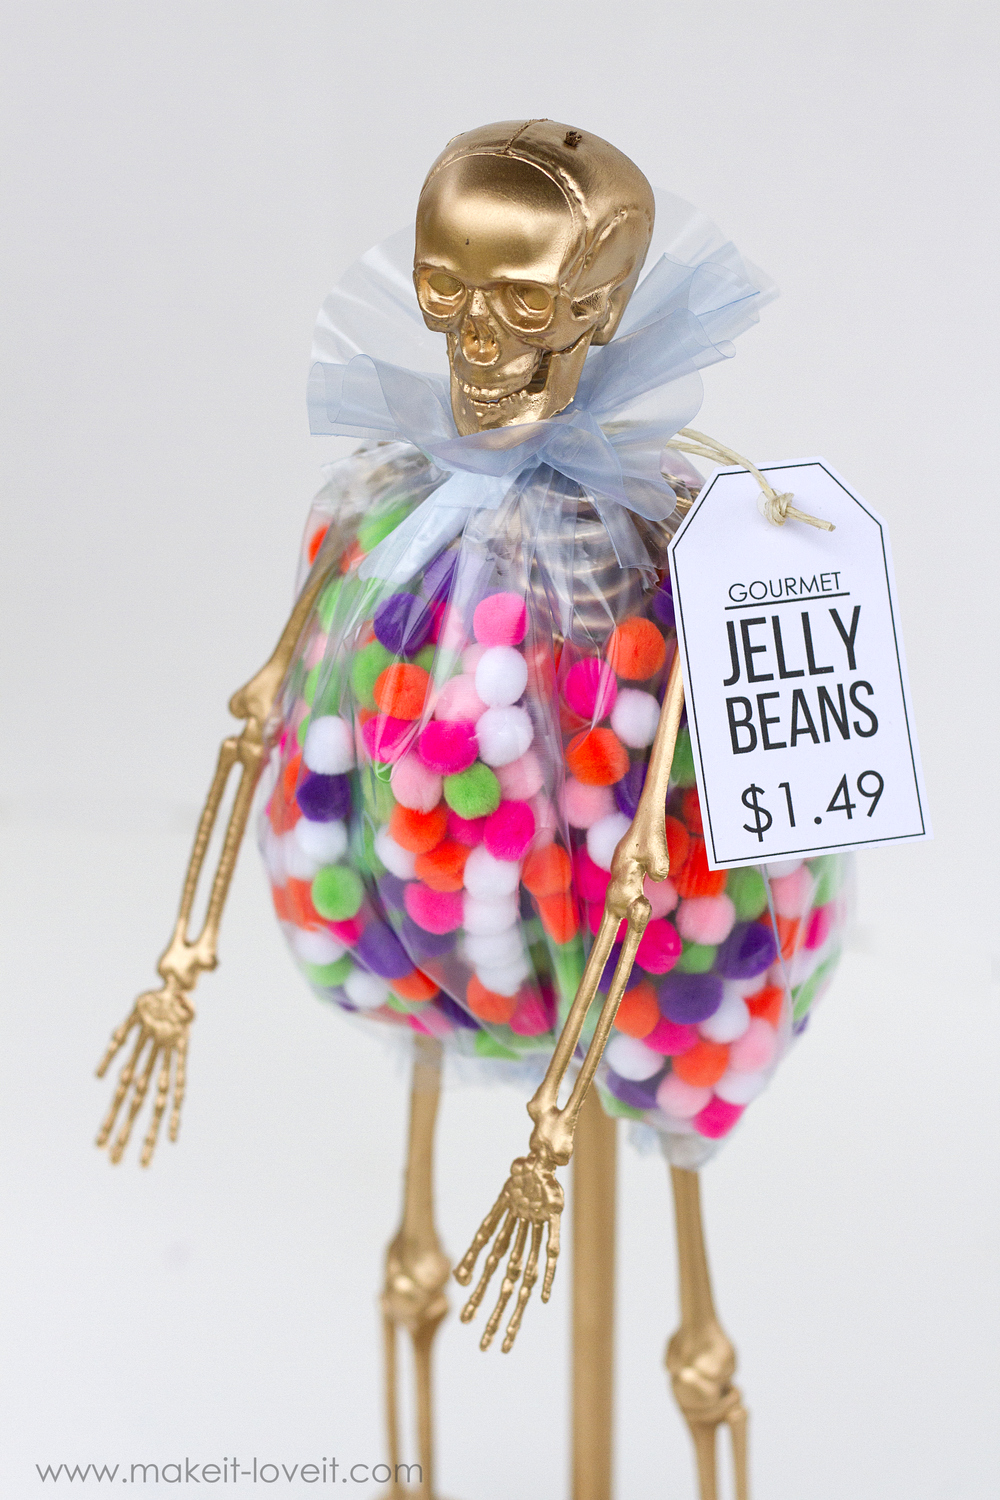 Costume Award Trophies (...for your Halloween Party), PART 2 | via www.makeit-loveit.com